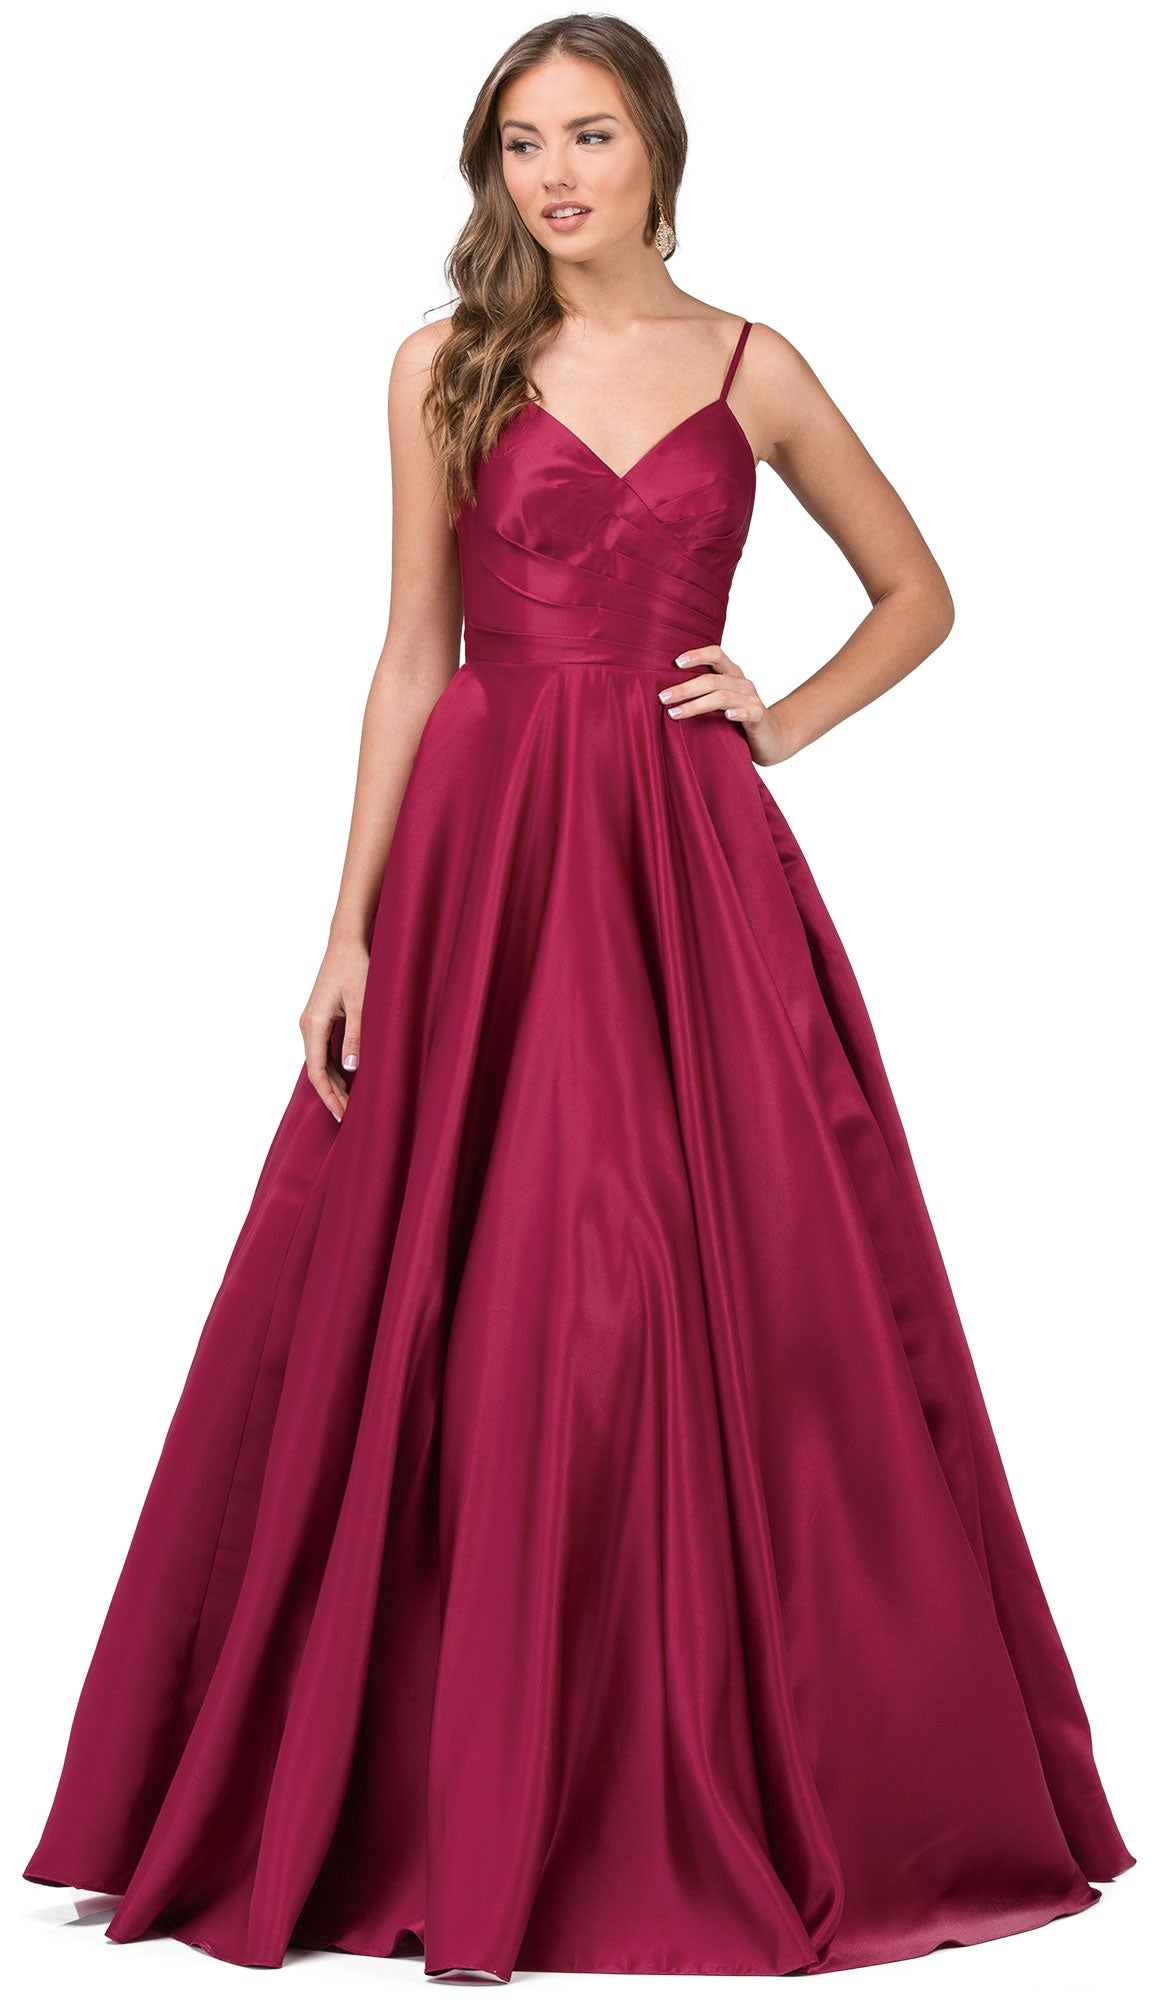 Main image of V-neck Adjustable Straps Pleated Bust Long Prom Dress